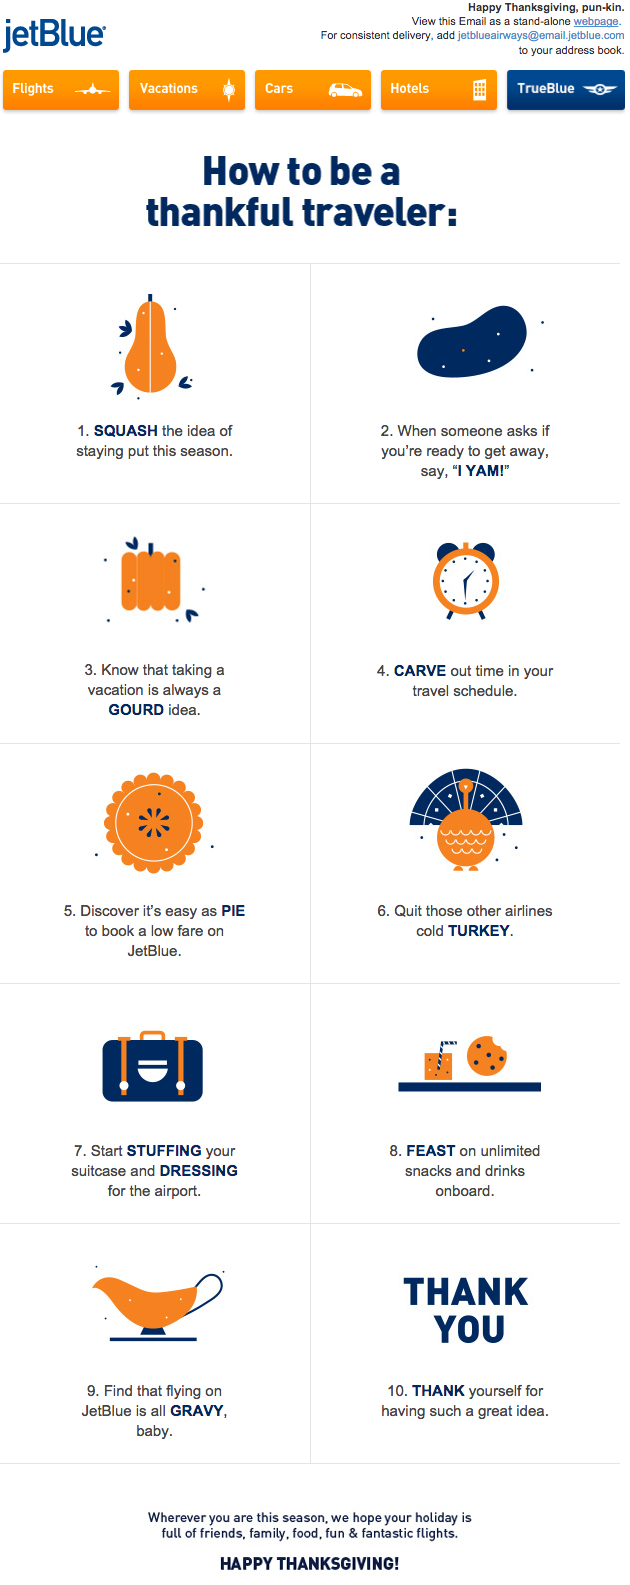 jetblue-thanksgiving-campaign.png